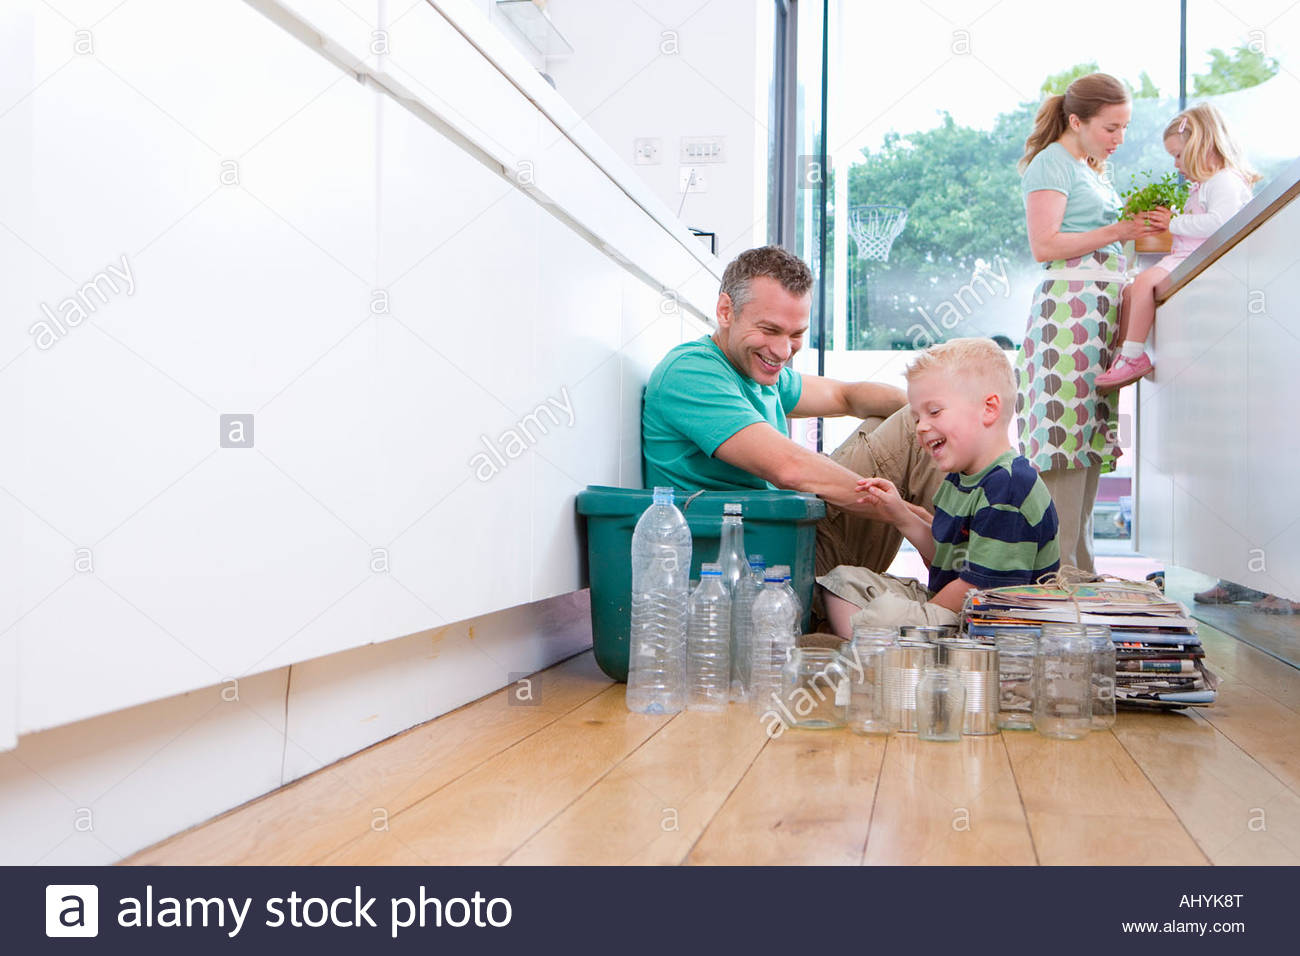 30's couple, girl and boy children aged 6 in kitchen with bottles, tins and newspapers for recycling with green - Stock Image